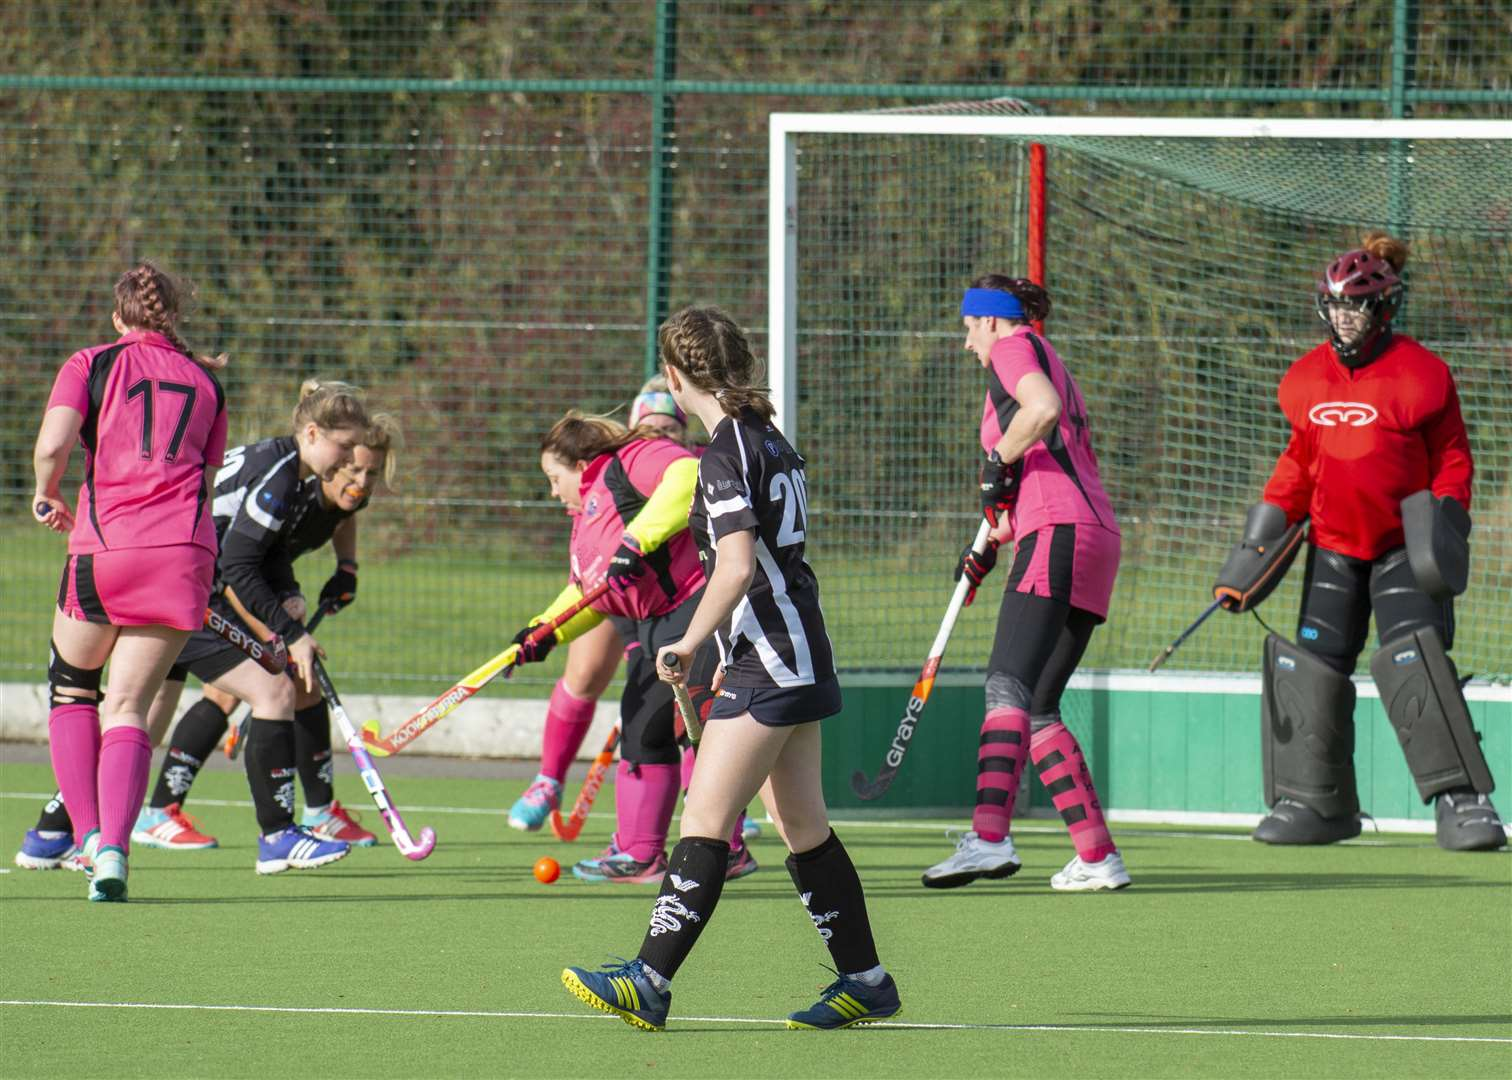 Bourne Ladies 2nds v Alford 2nds. Photo: Lee Hellwing (5305561)